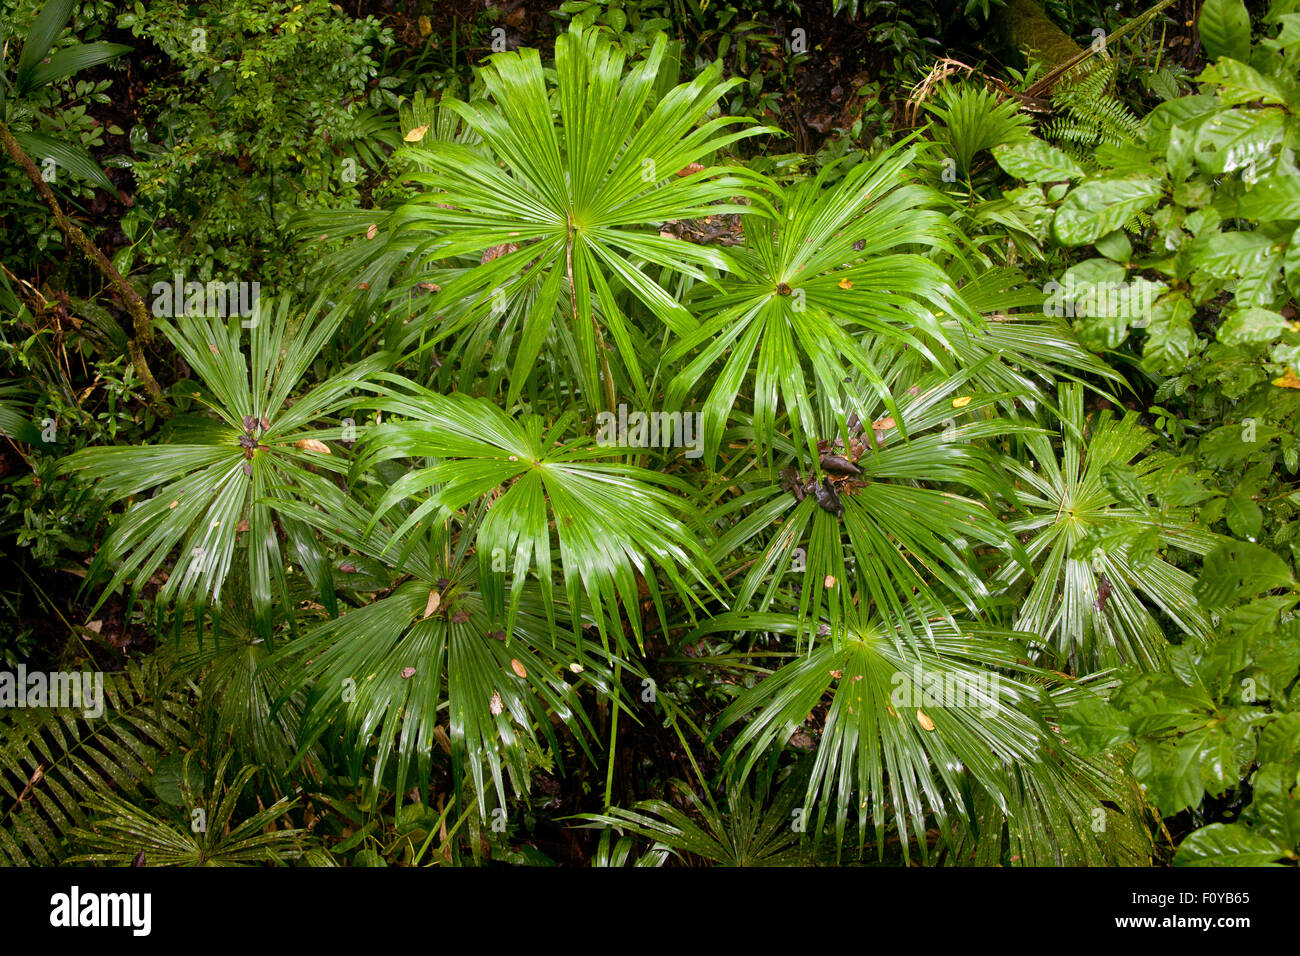 Palm formation inside the rain forest of Soberania national park, Republic of Panama. - Stock Image